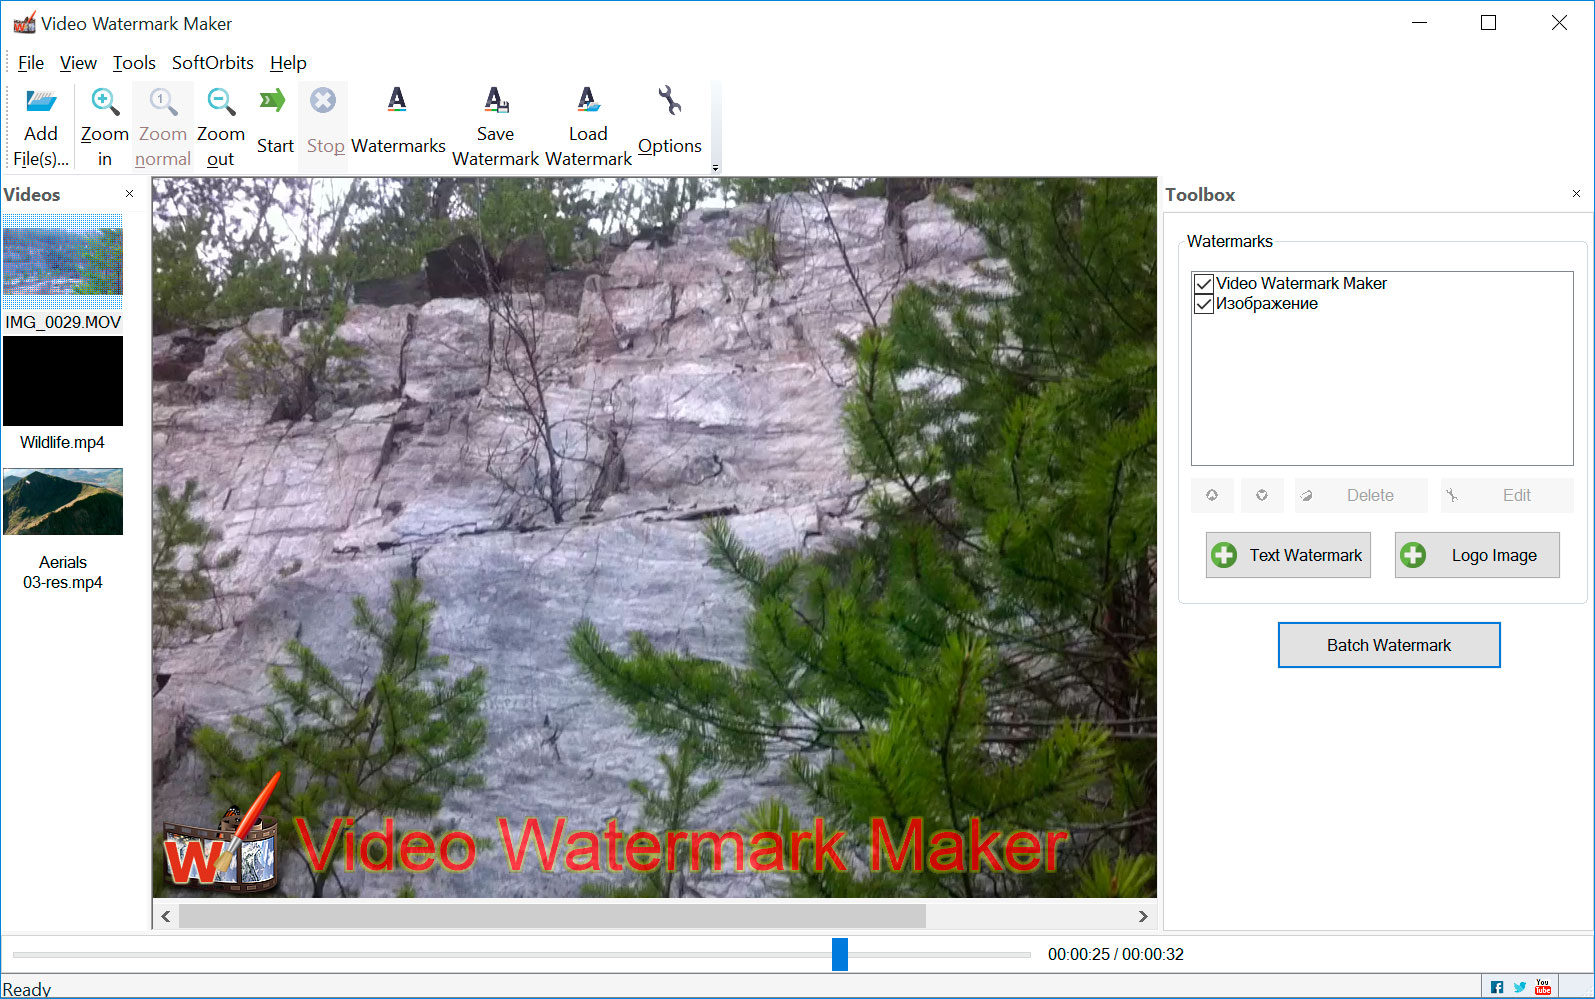 Video Watermark Maker